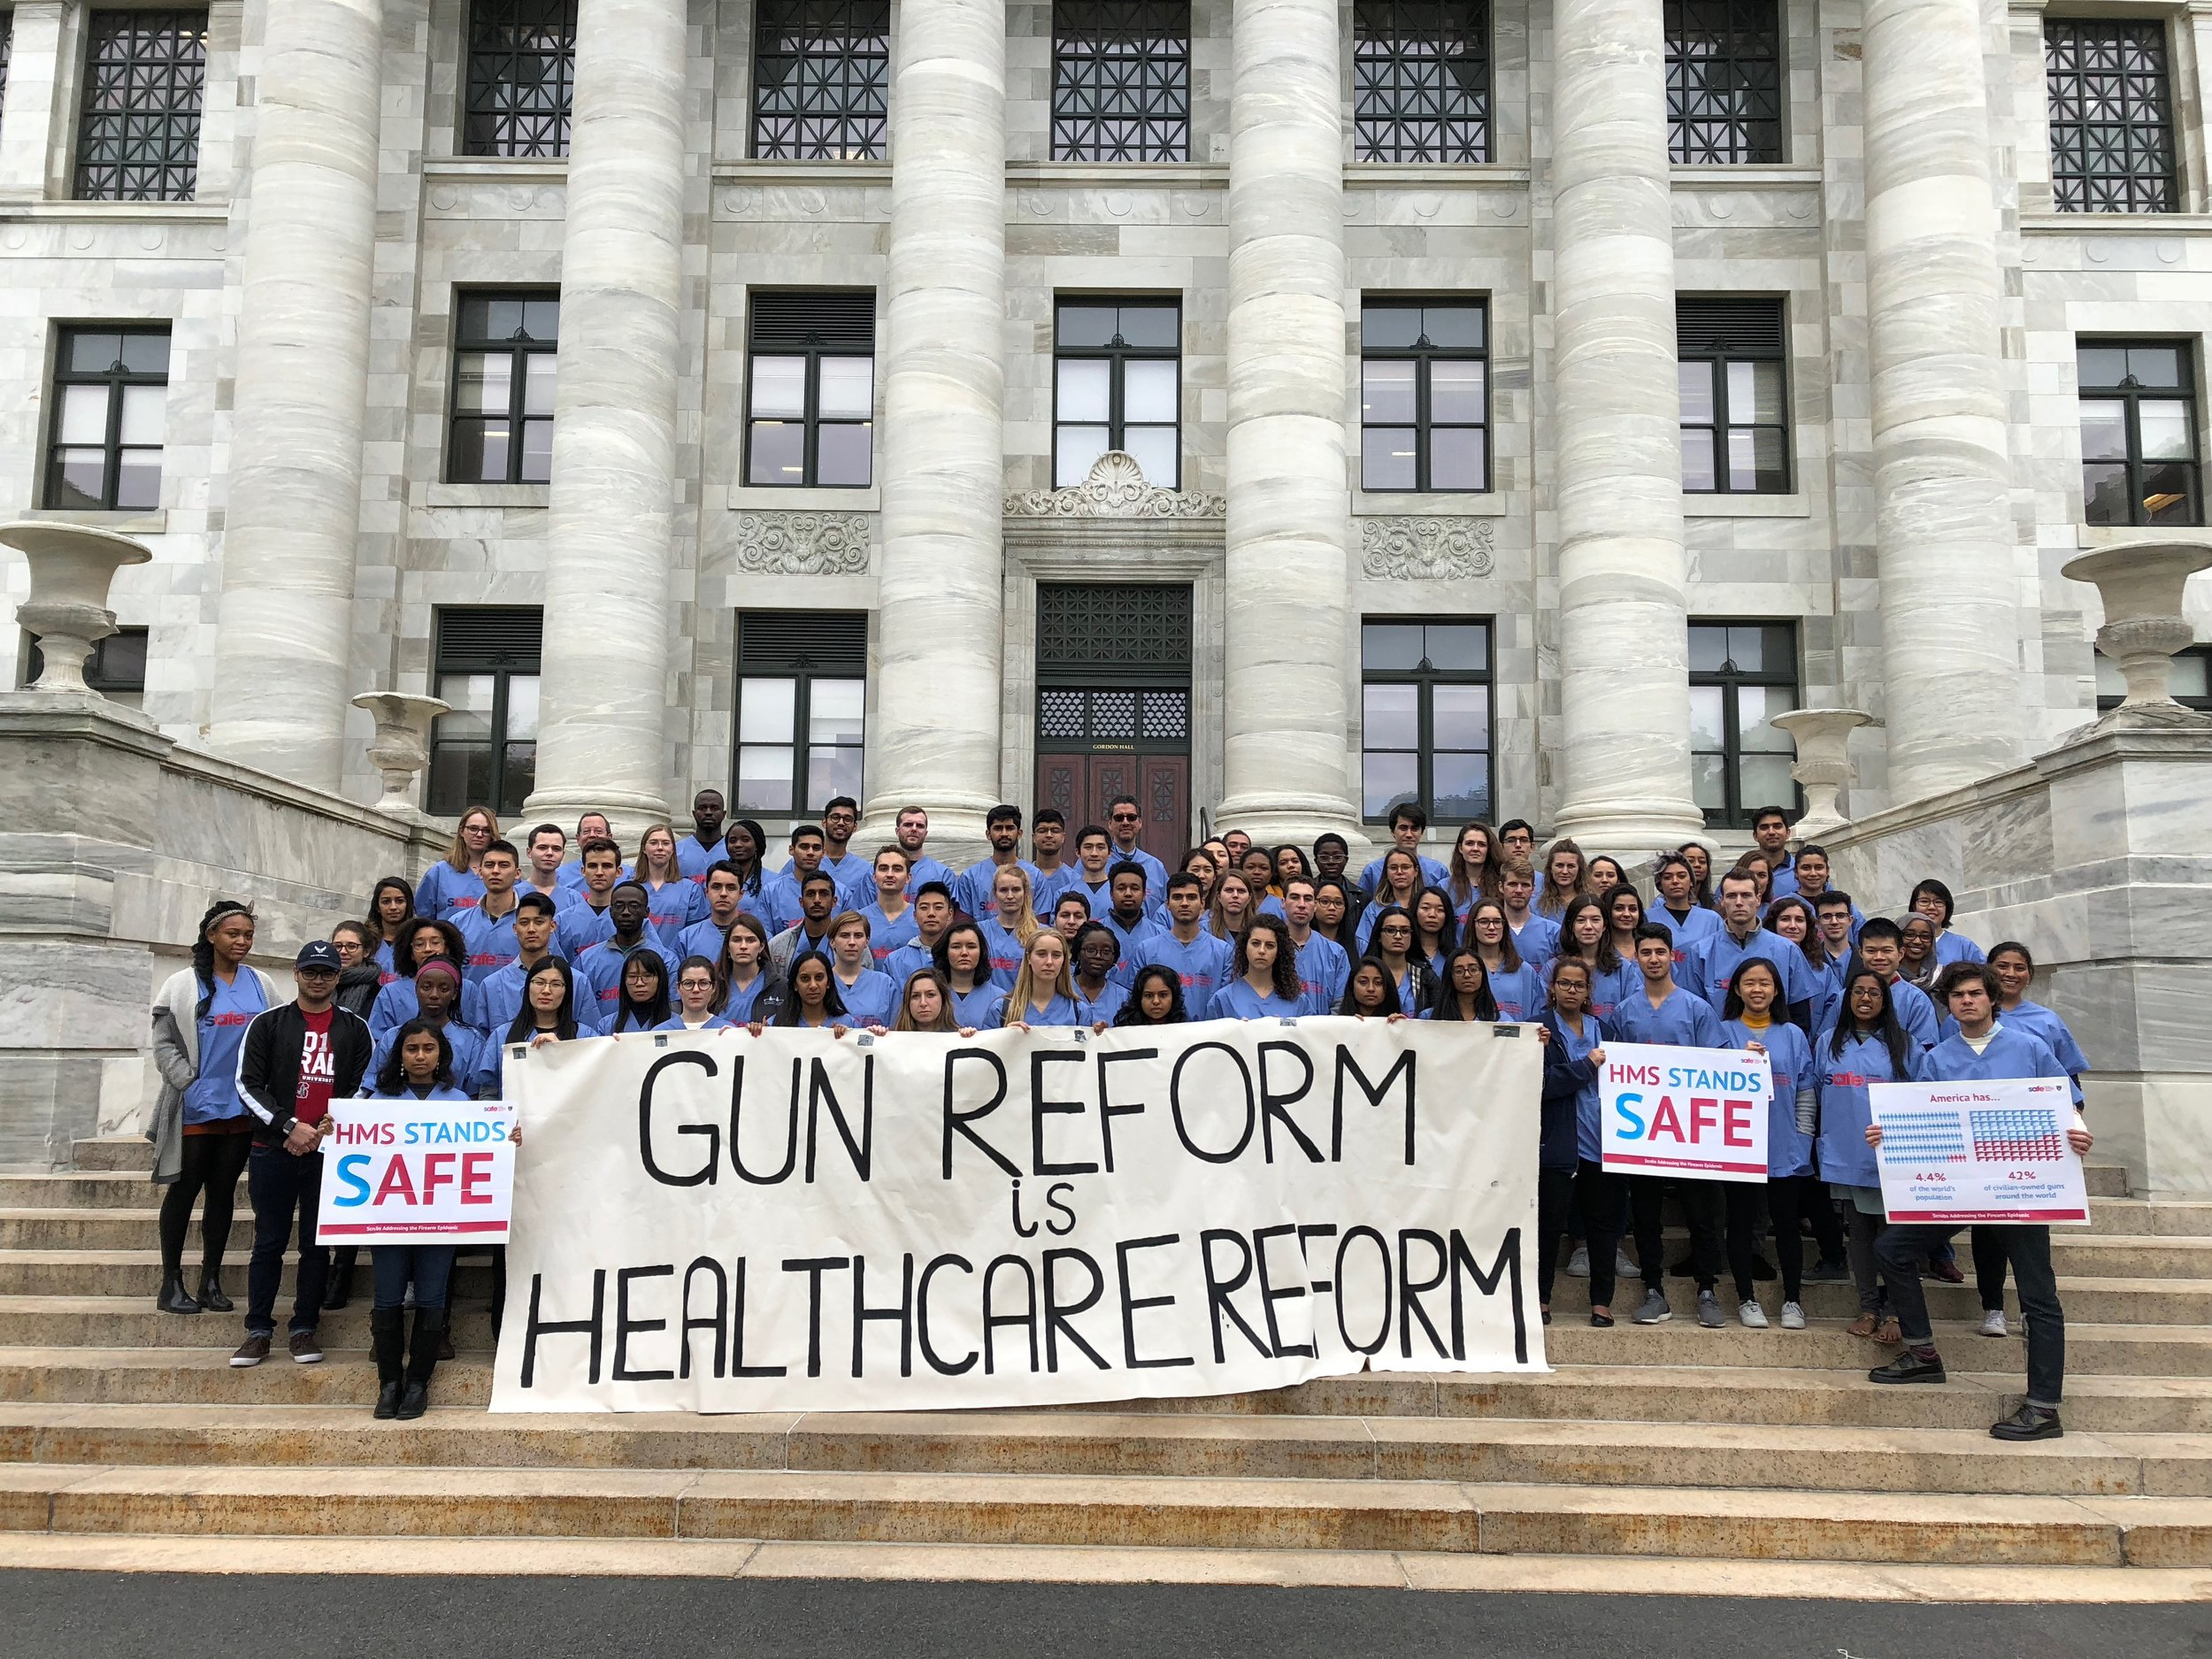 LAST YEAR'S EVENT - In 2018, dozens of medical schools and hospitals gathered across the country to demand action on gun reform.